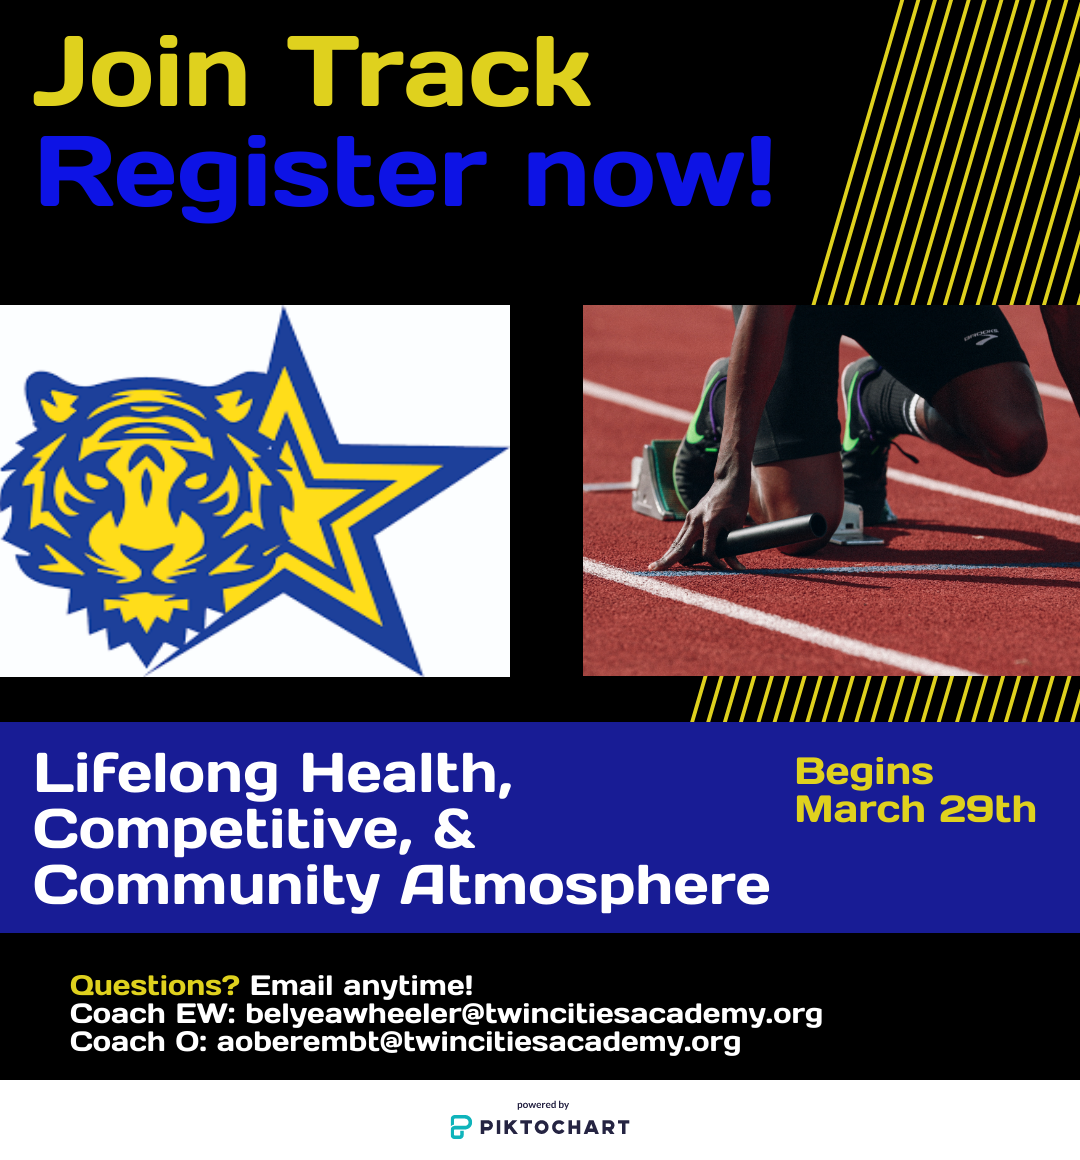 Join Track! Register now! Email belyeawheeler@twincitiesacademy.org or aoberembt@twincitiesacademy.org